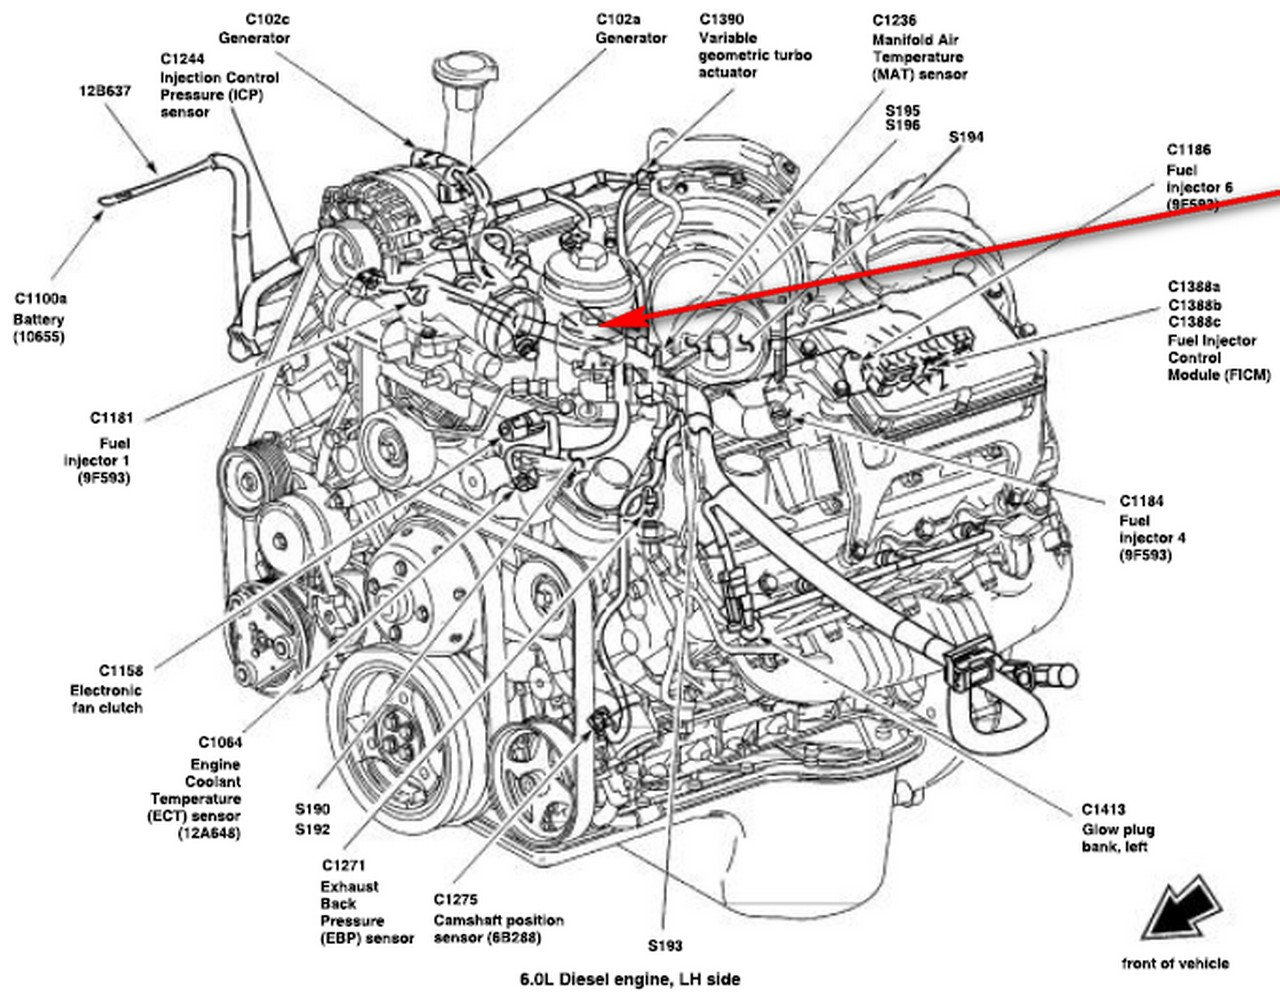 where can i get a diagram of the fuel filter housing located under the hood on a 06 u0026 39  6 0 liter